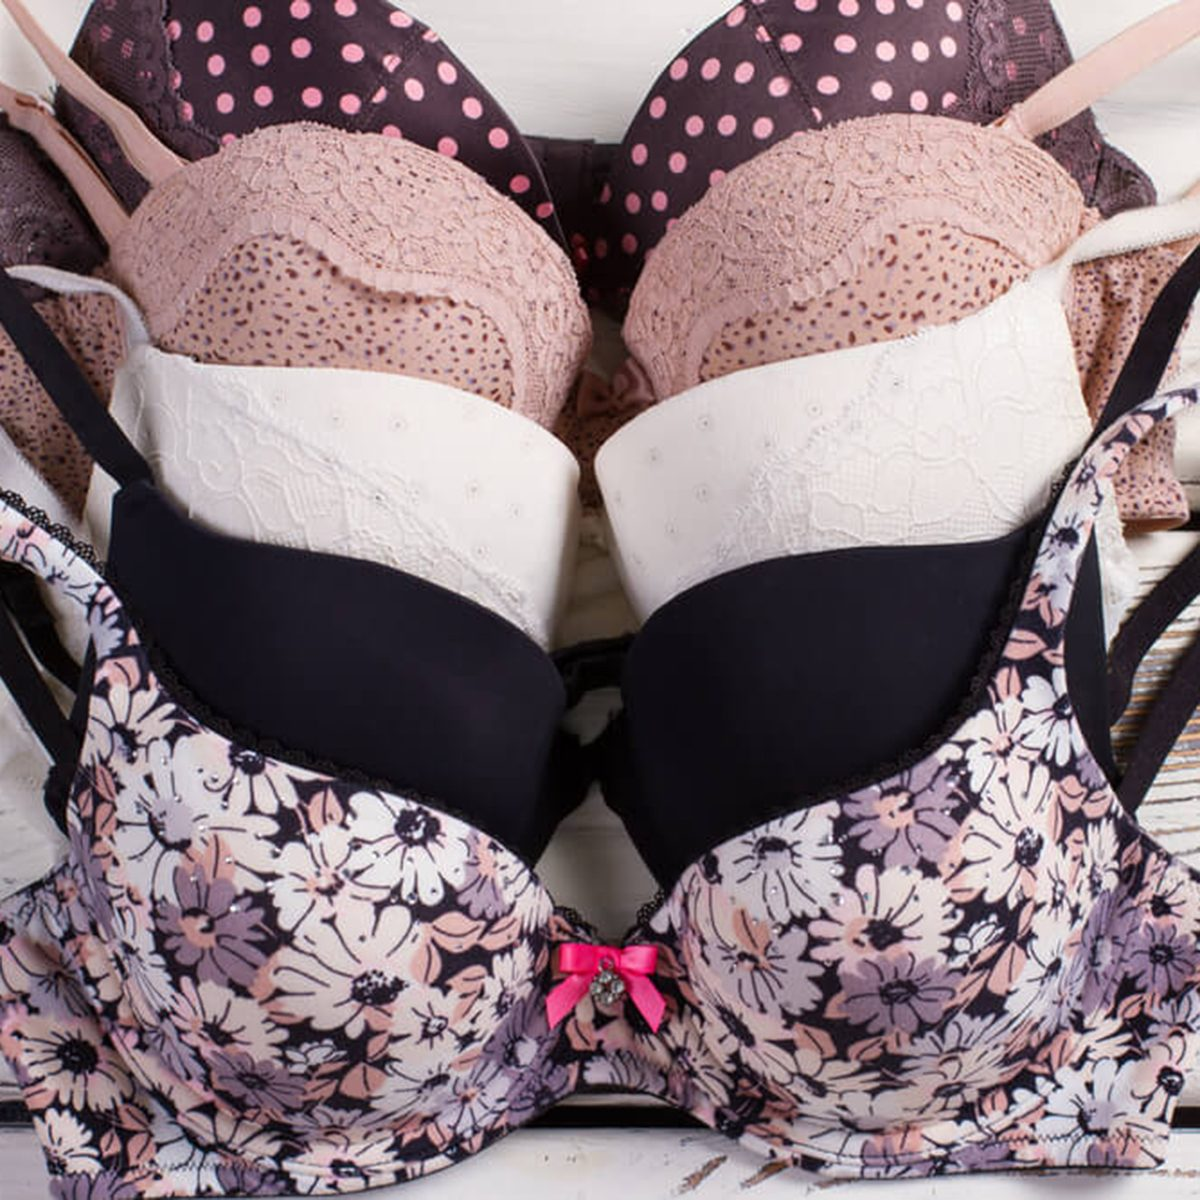 Patterned bras in a row